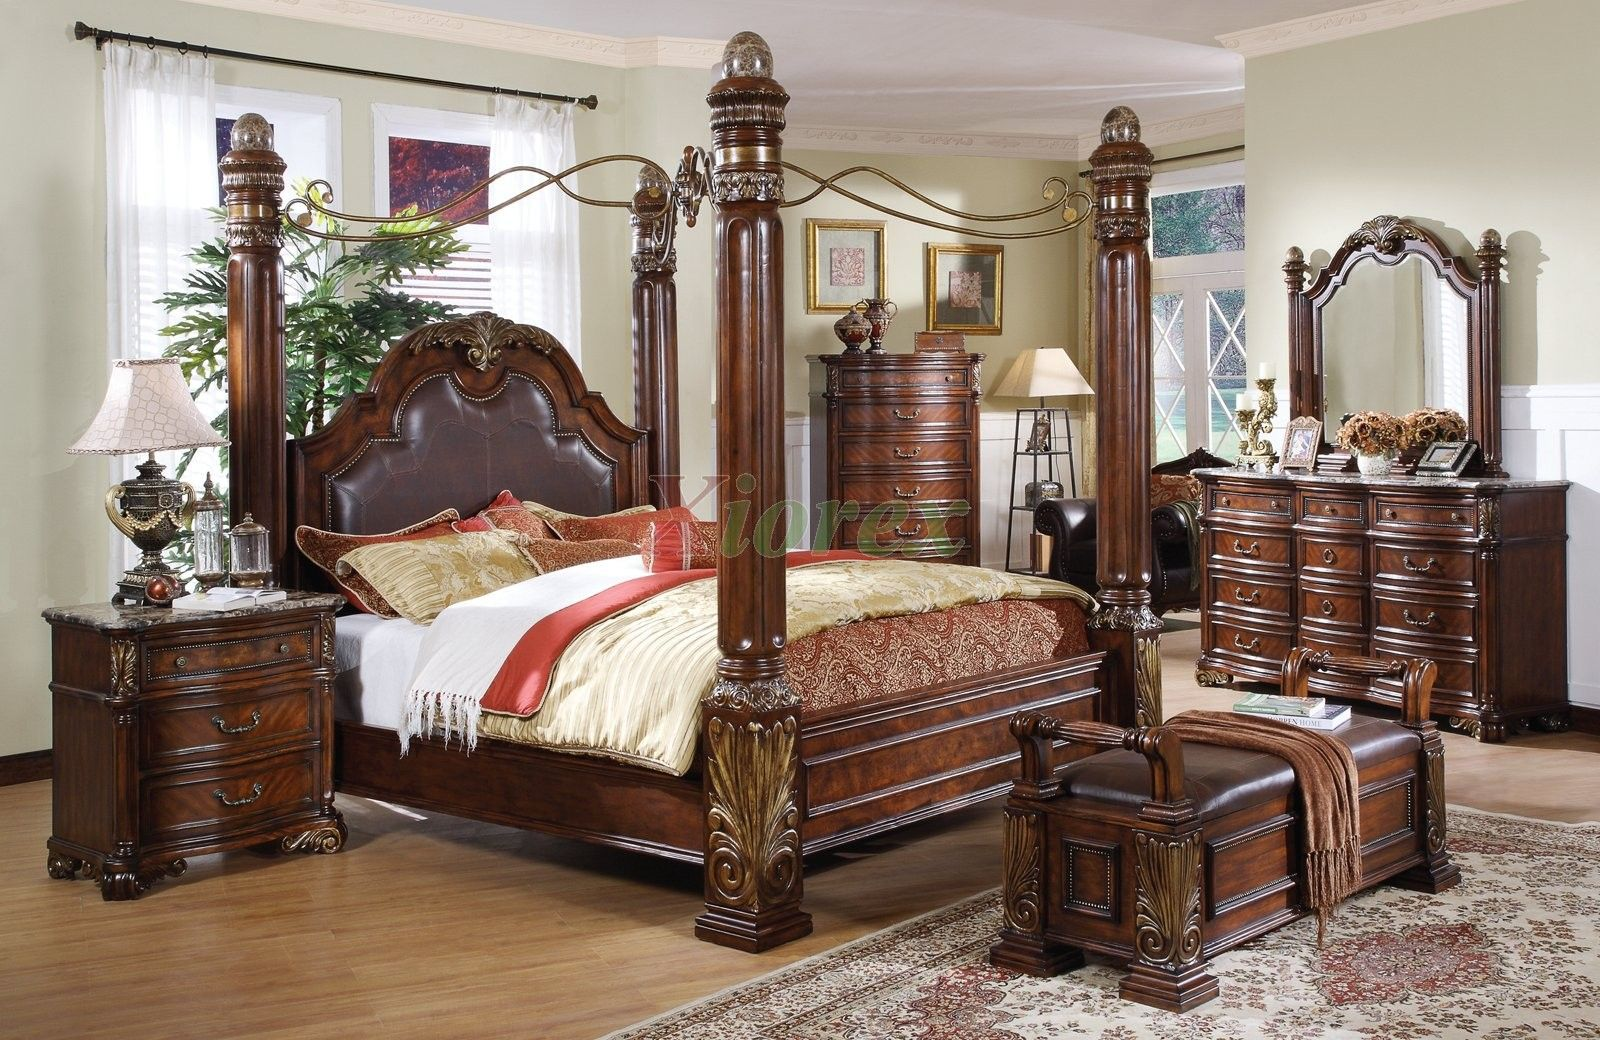 Quality Bedroom Sofa Fabulous Quality Bedroom Furniture 4 For